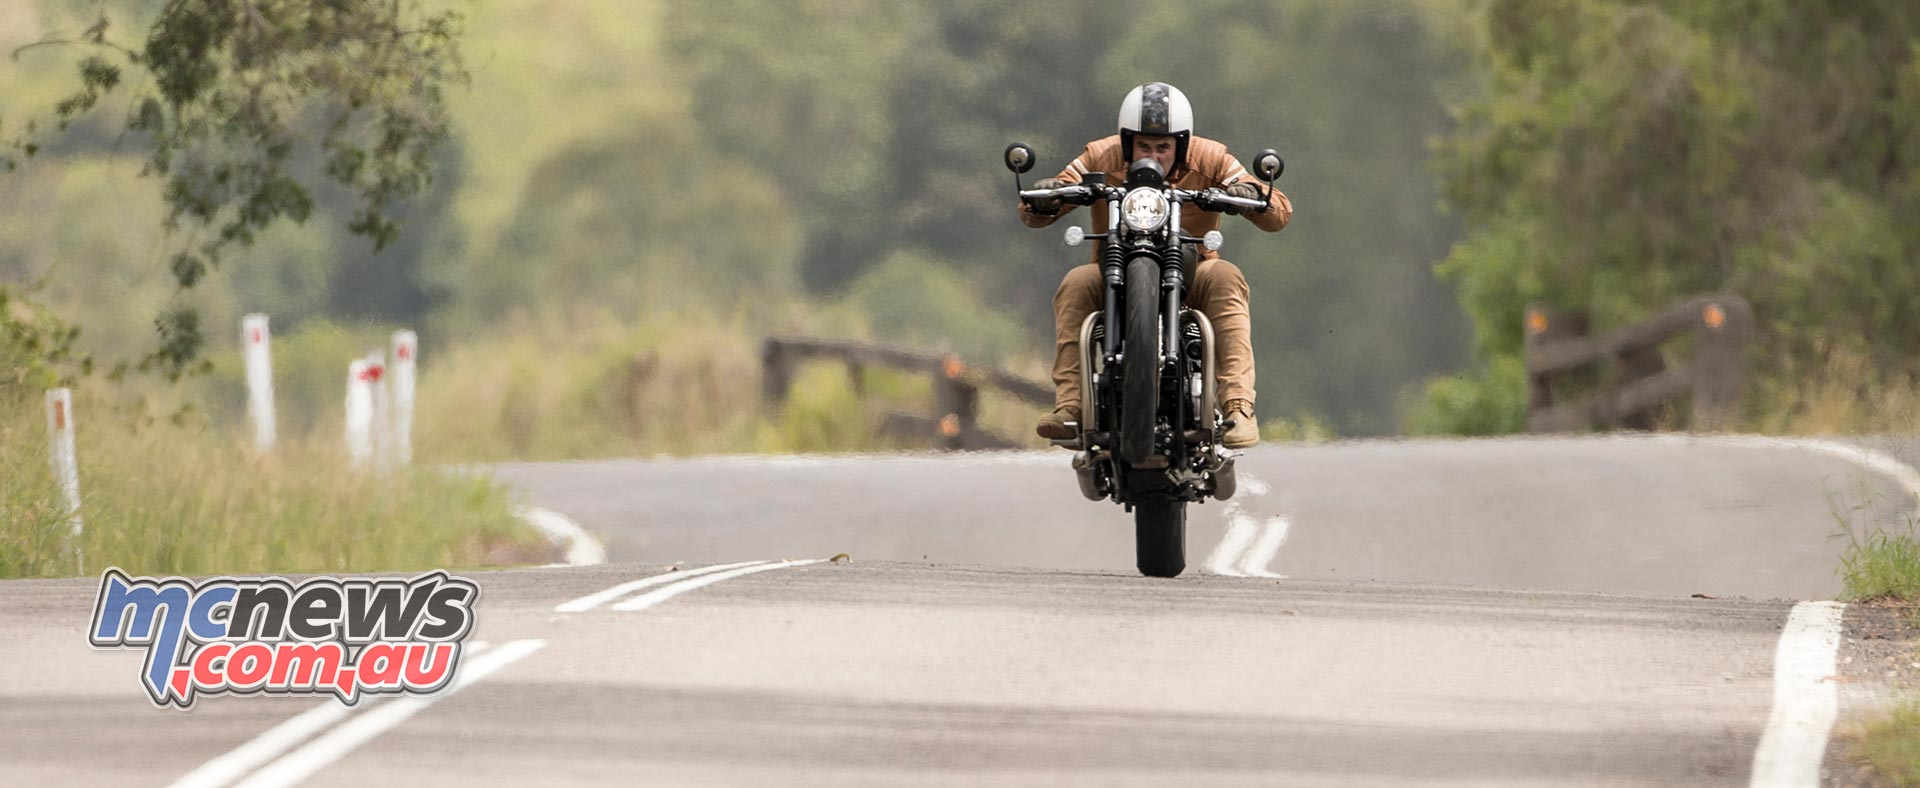 Triumph Bobber - Image by Dean Walters